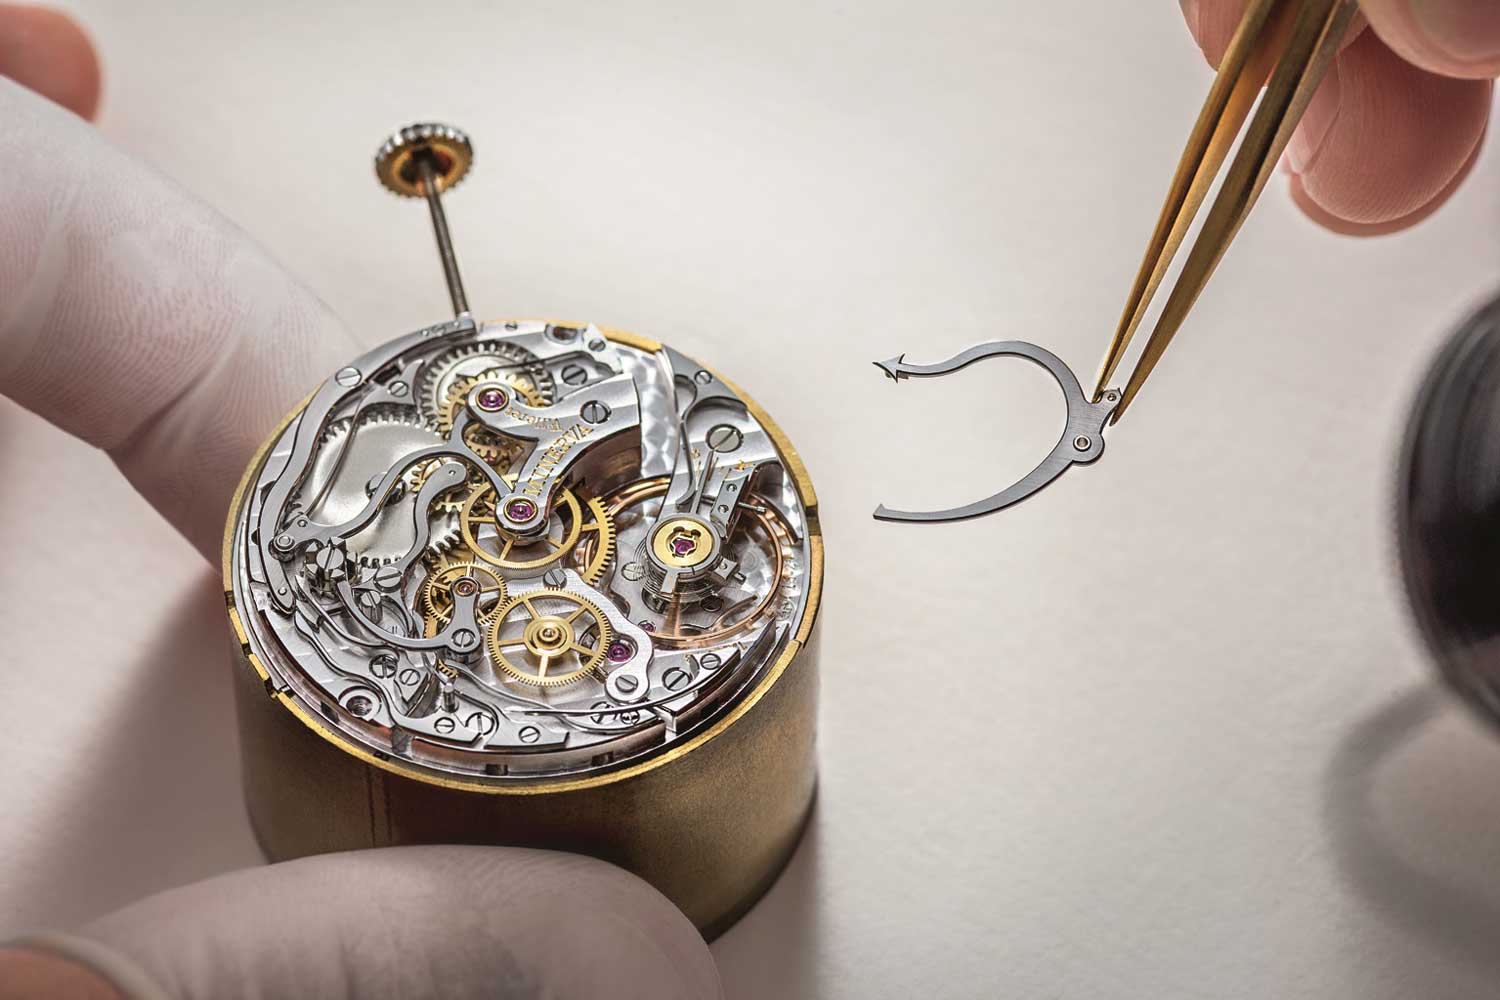 As per experts from the Boston Consulting Group,the Swiss watch market can expect a growth of +15 percent this year.